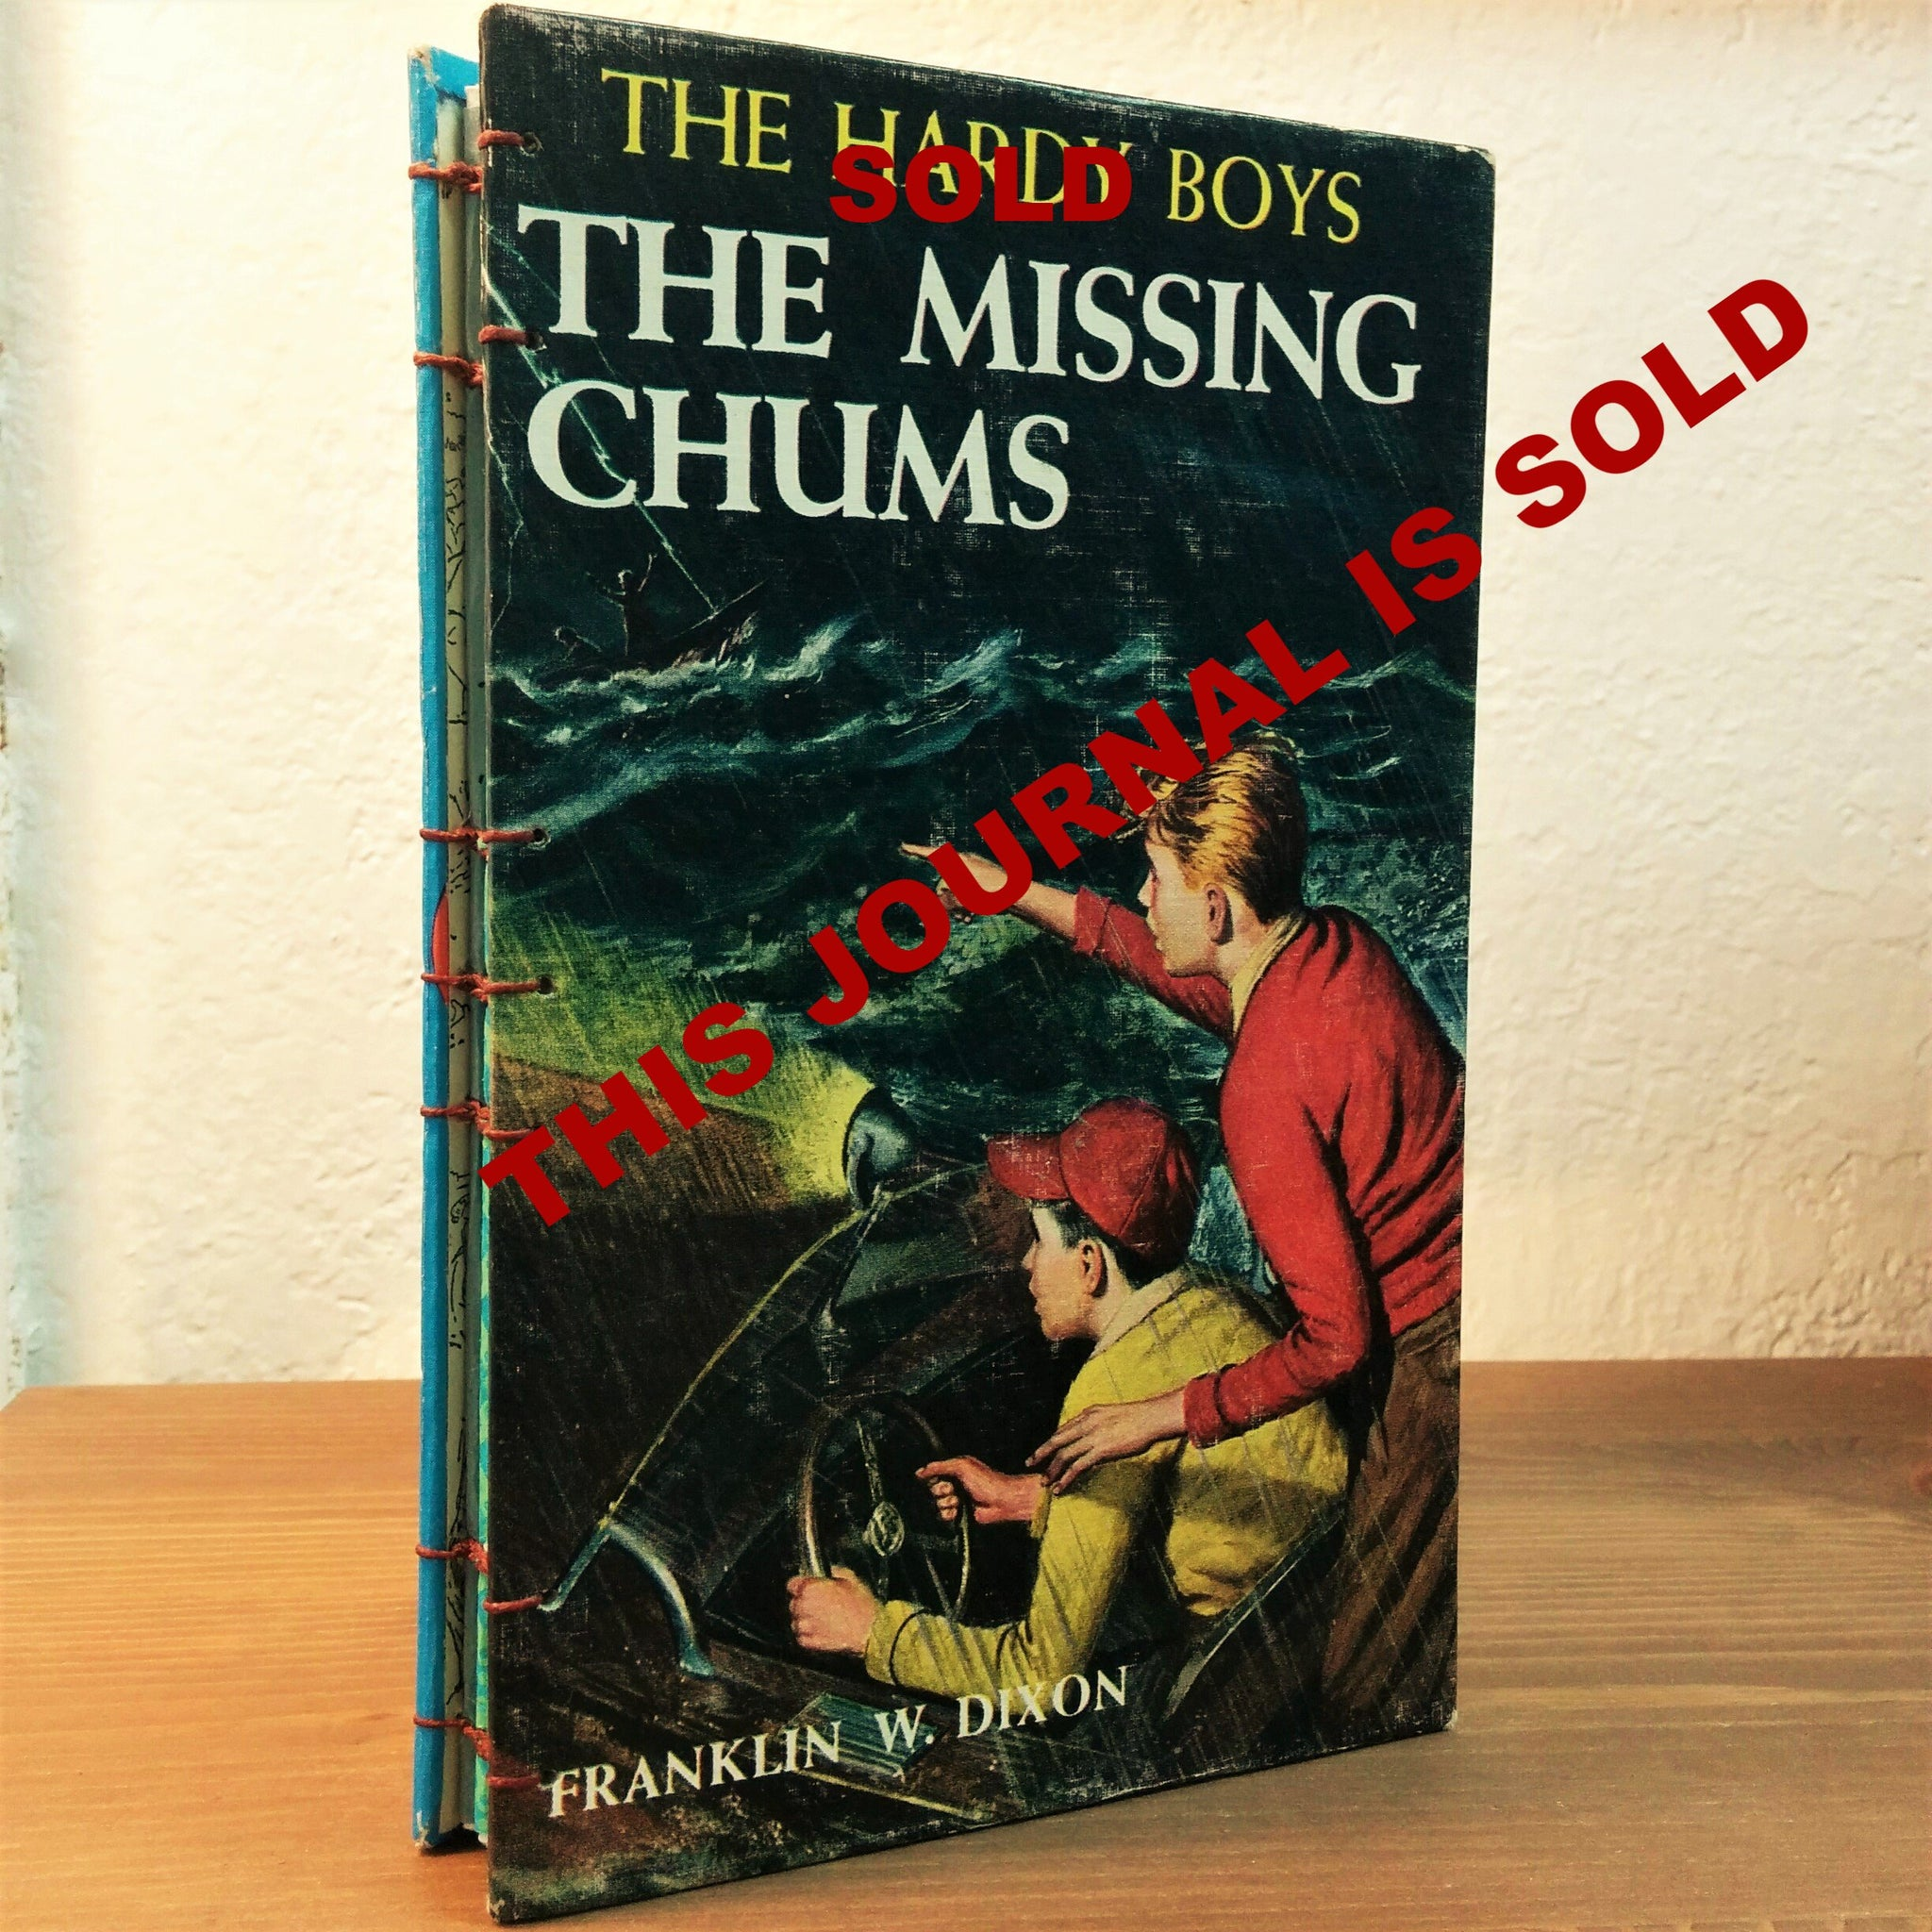 The Hardy Boys reclaimed Journal with cover The Missing Chums